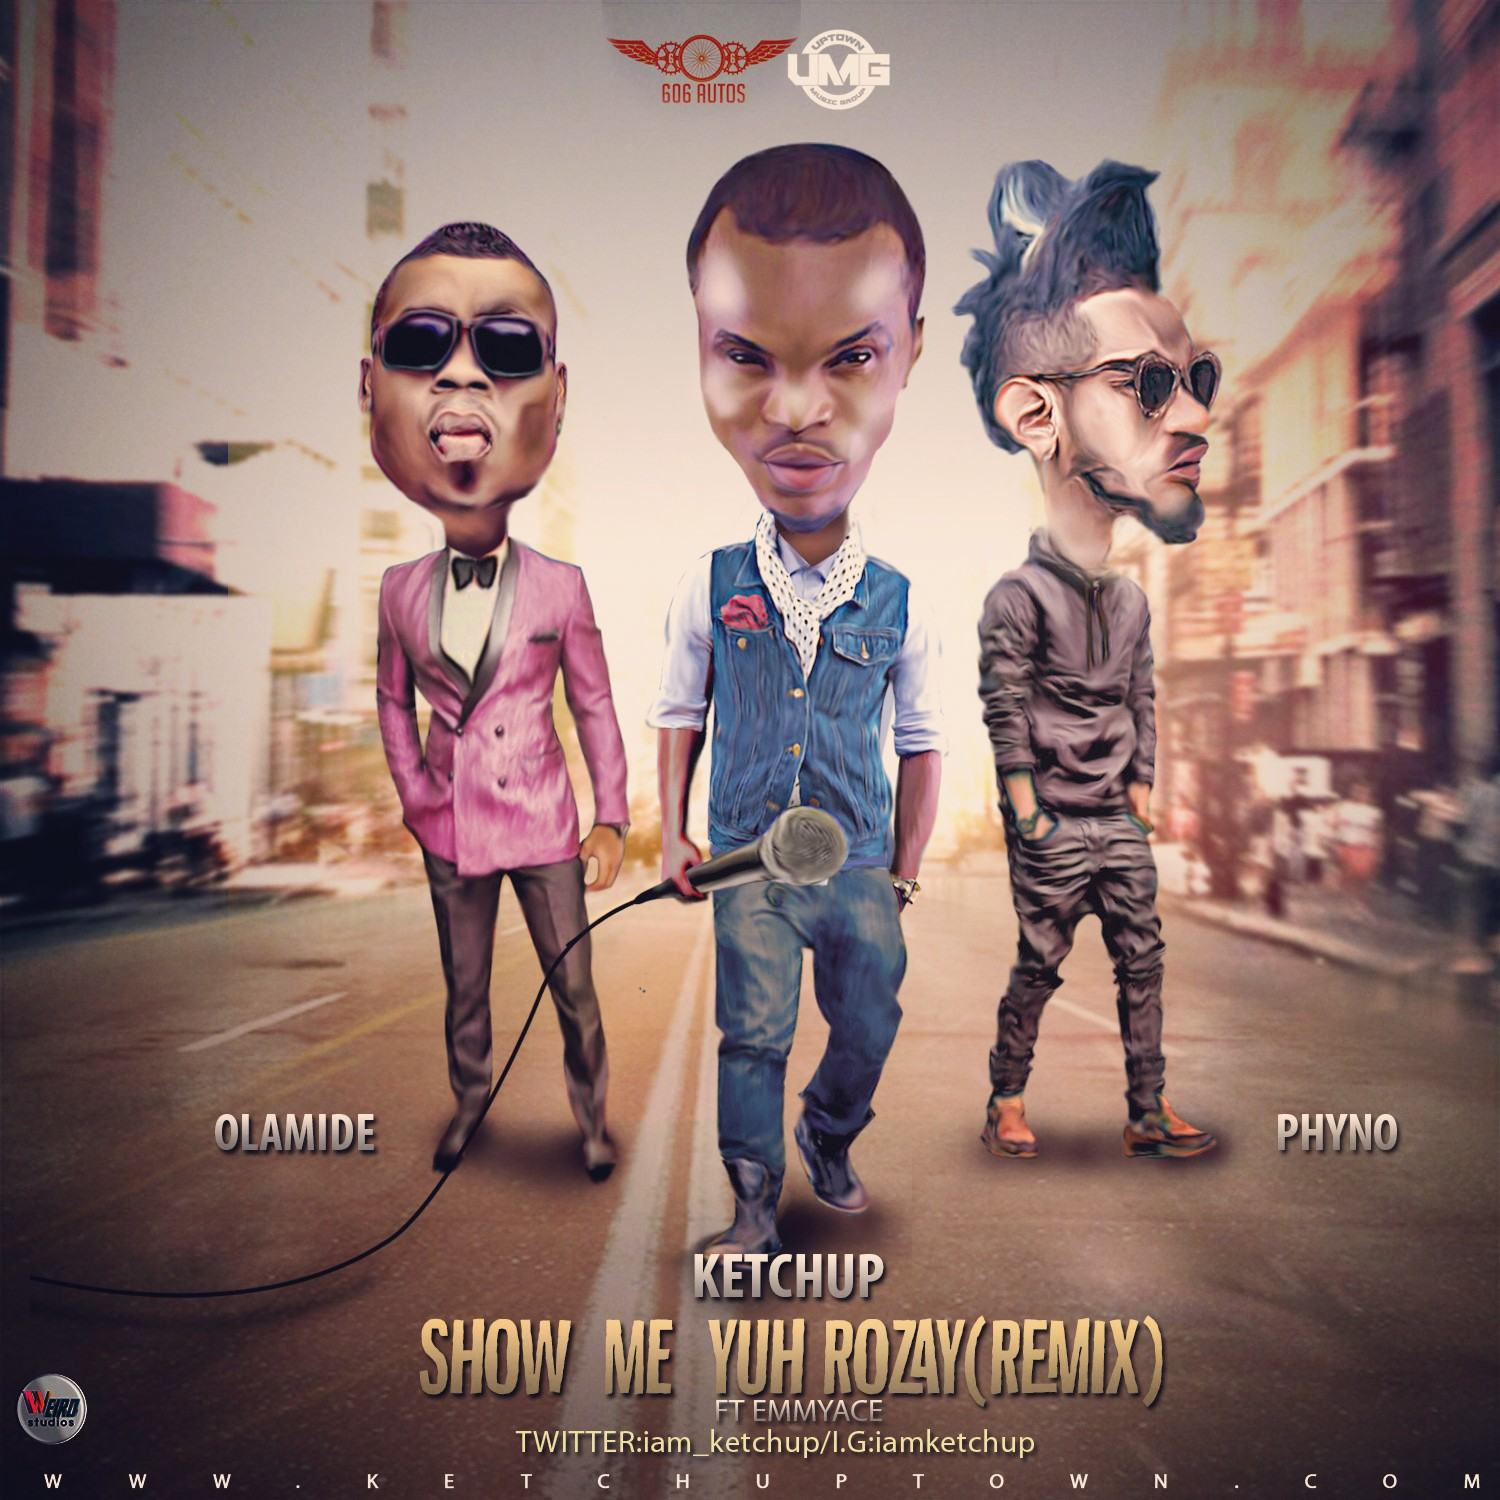 KetchUp - Show Me Yuh Rozay remix ft Olamide & Phyno [AuDio]